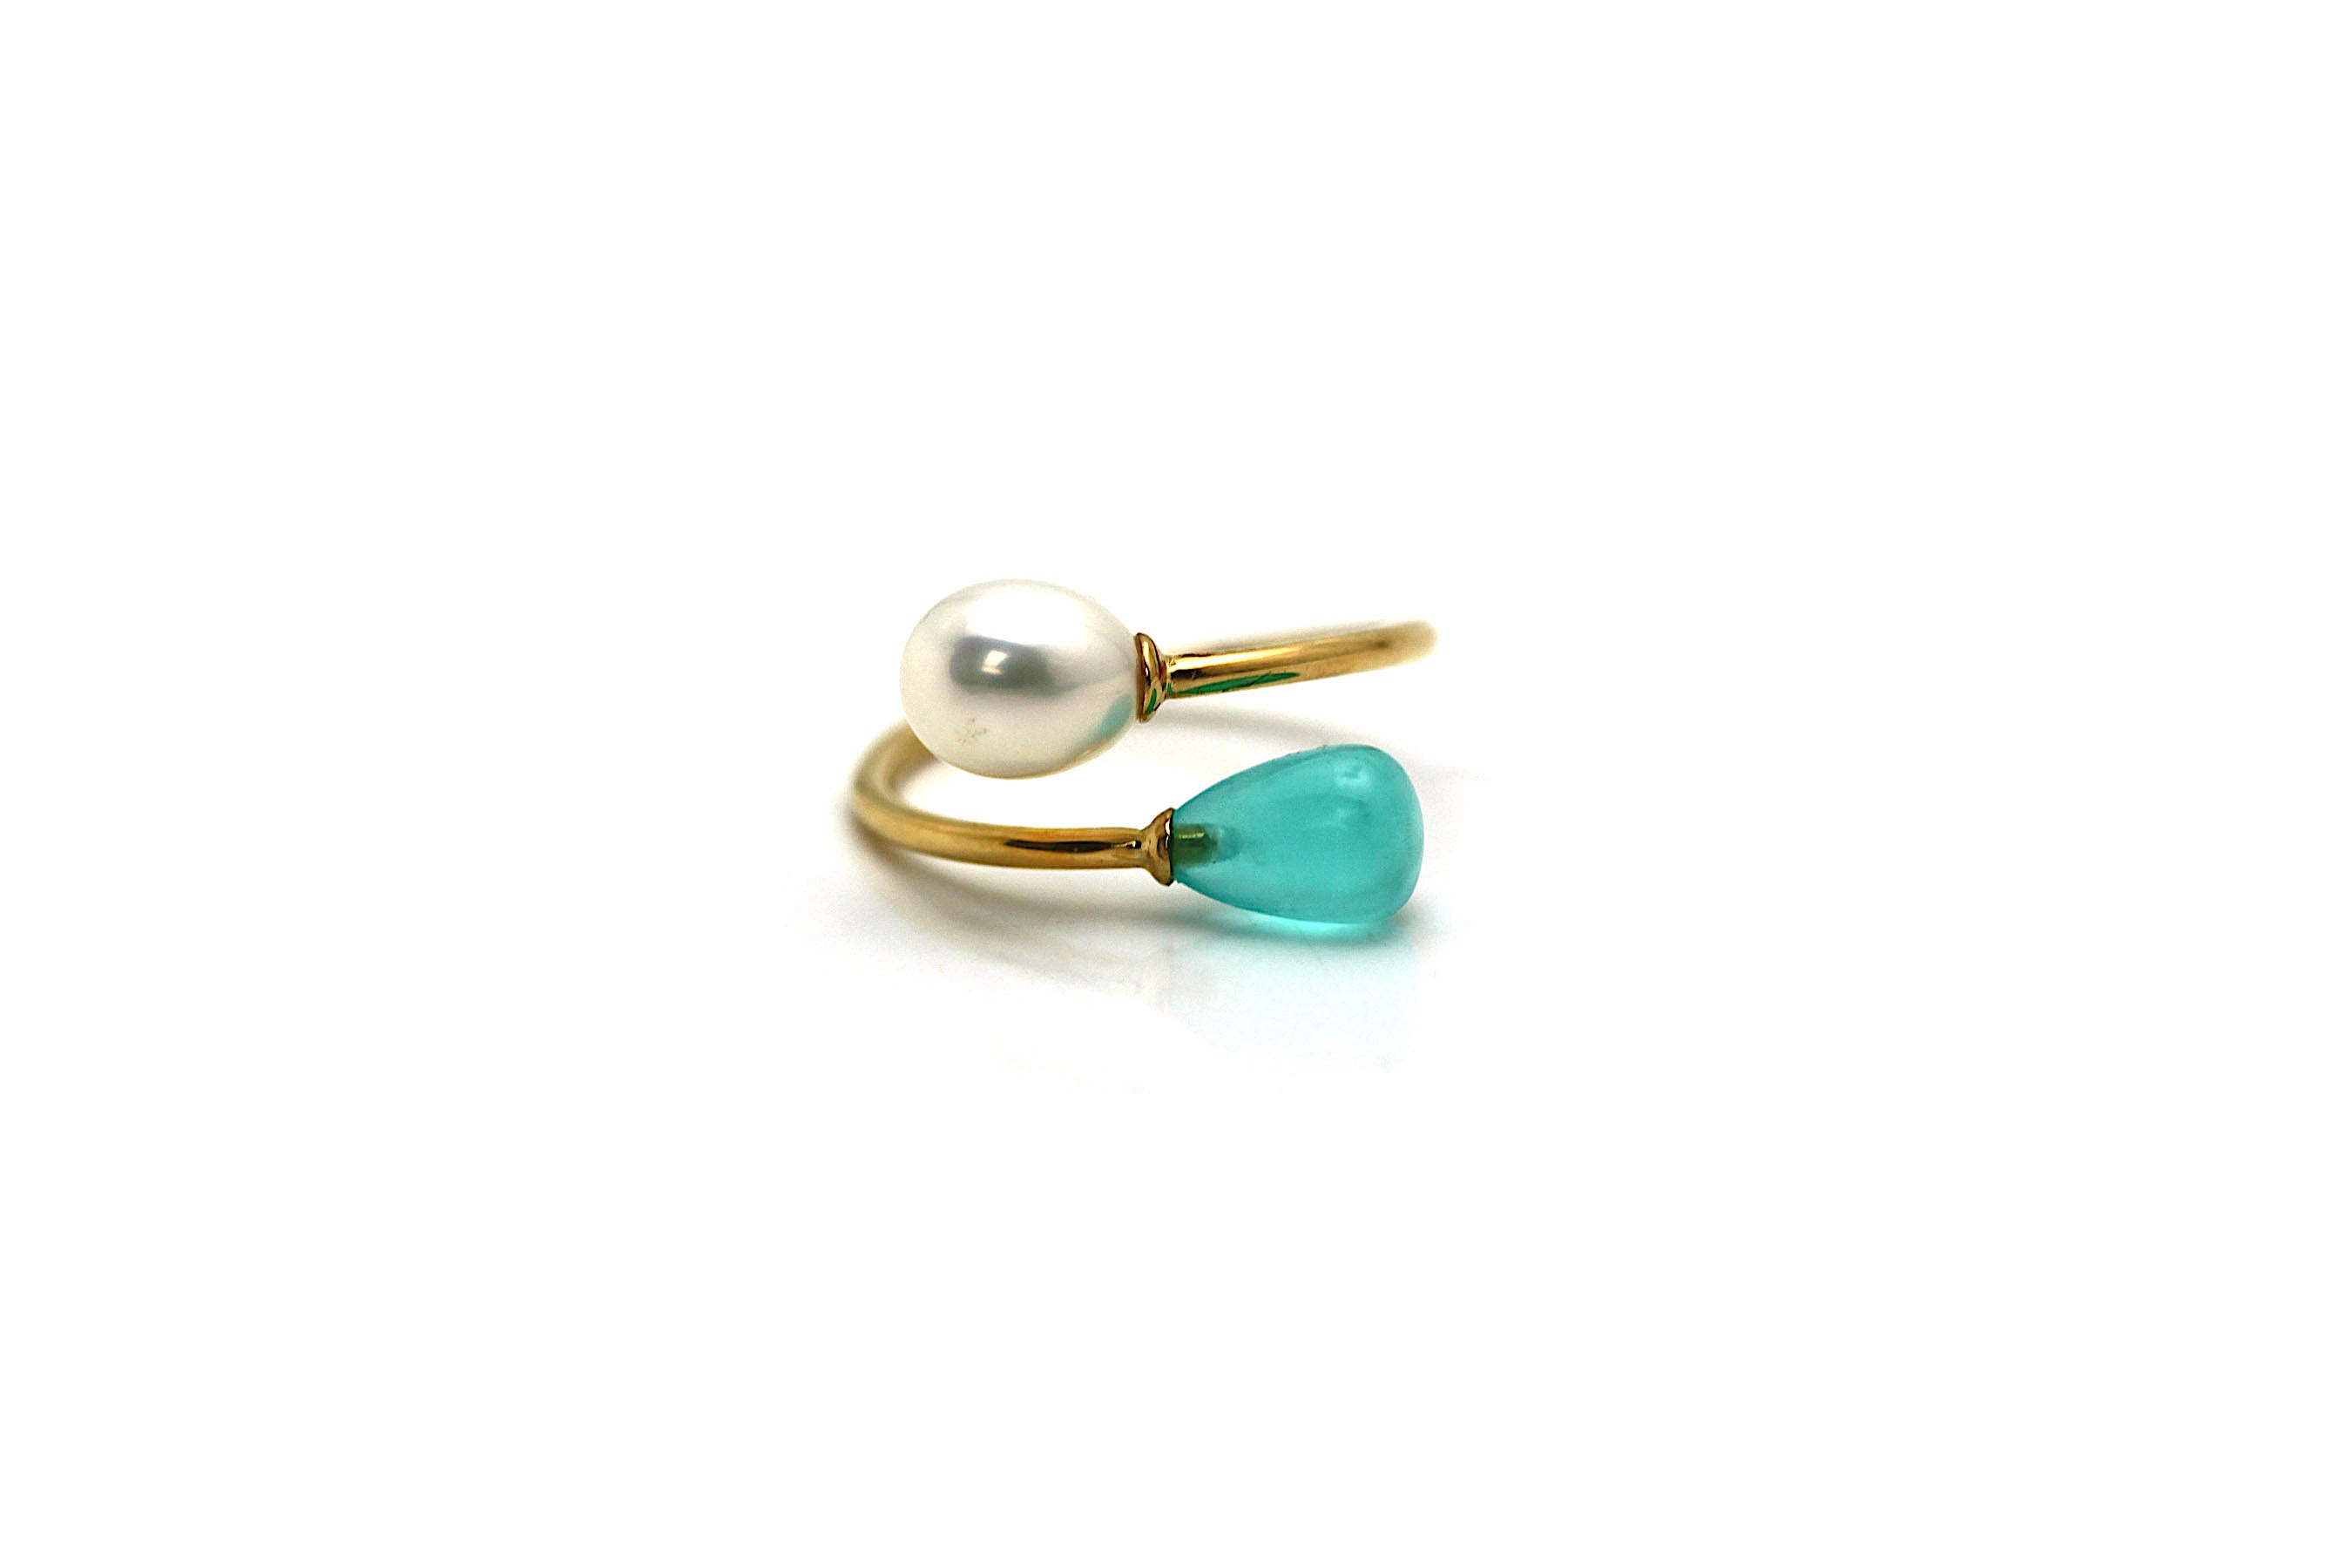 Peruvian Opal & Pearl Ring in 18k YG